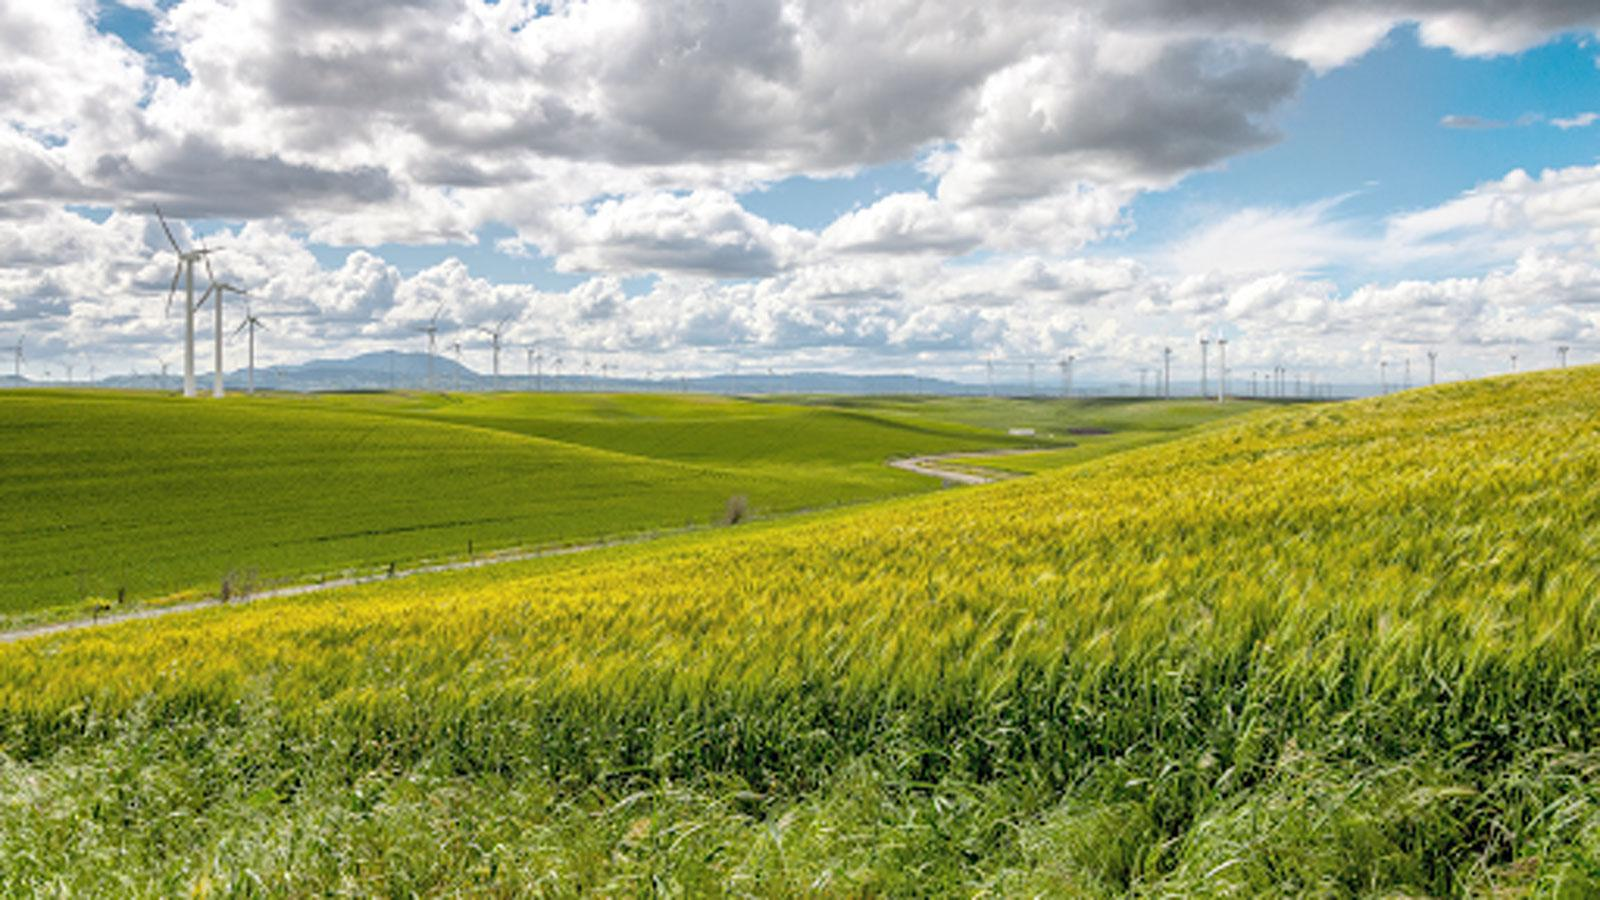 """<h4>CLEAN ENERGY & GLOBAL WARMING</h4><h5>We're calling for the expansion and extension of clean energy tax credits.</h5><div><a style=""""padding: 8px 15px 10px 10px; font-family: 'open_sansbold' !important; color: #fff; border: none; border-radius: 5px; background-color: #FF0000;"""" href=""""http://environmentamerica.webaction.org/p/dia/action4/common/public/?action_KEY=42202"""">TAKE ACTION</a></div><em>WestBoundary Photography Chris Gill</em>"""